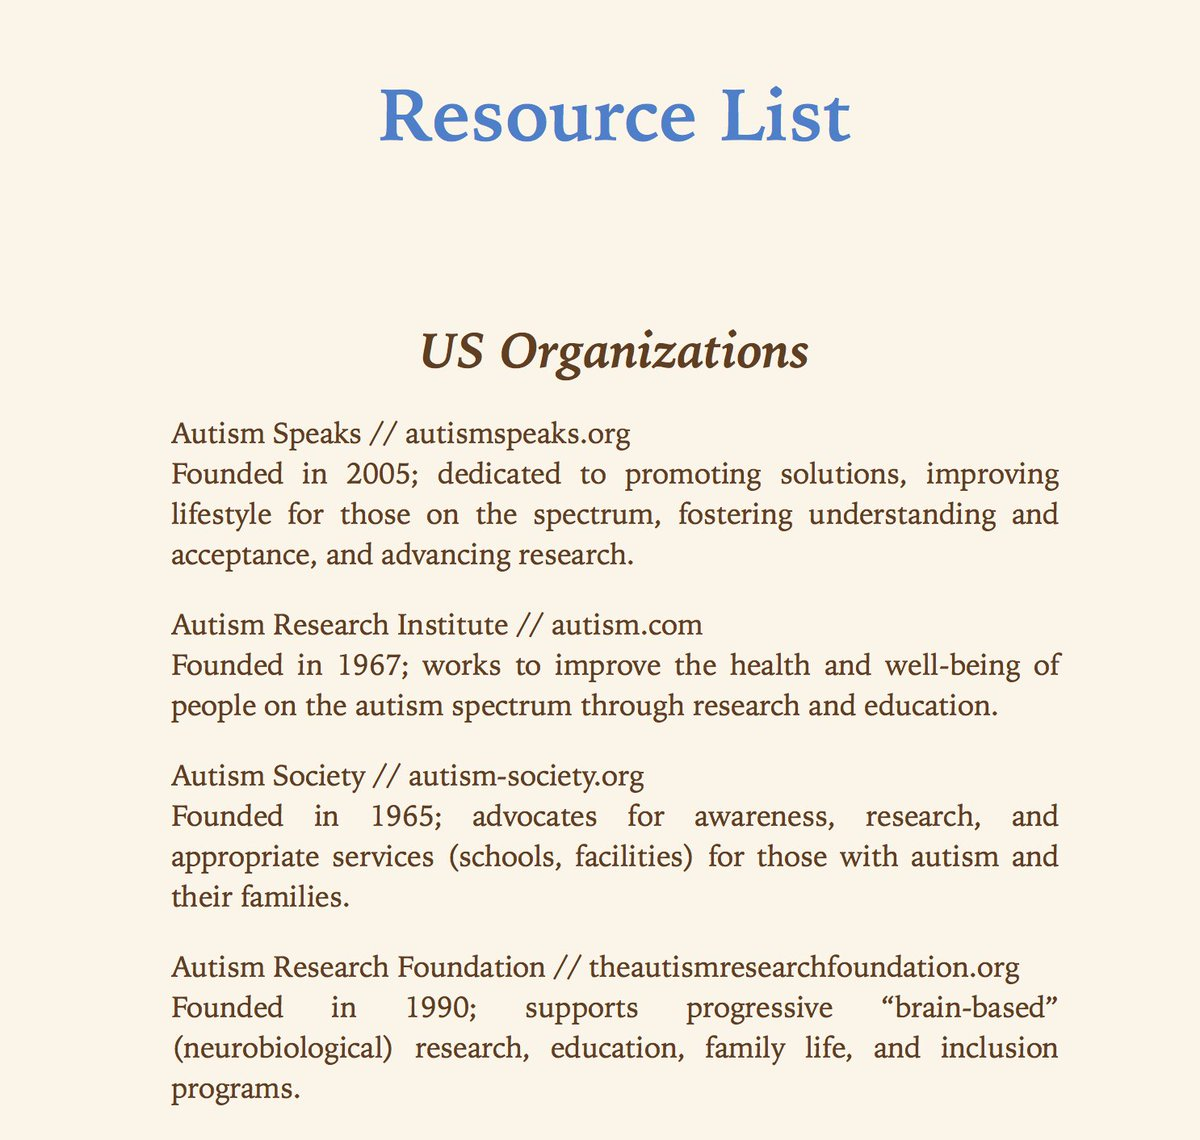 A screenshot from an e-copy of To Siri With Love that lists Autism Speaks first in a list of US organizations.